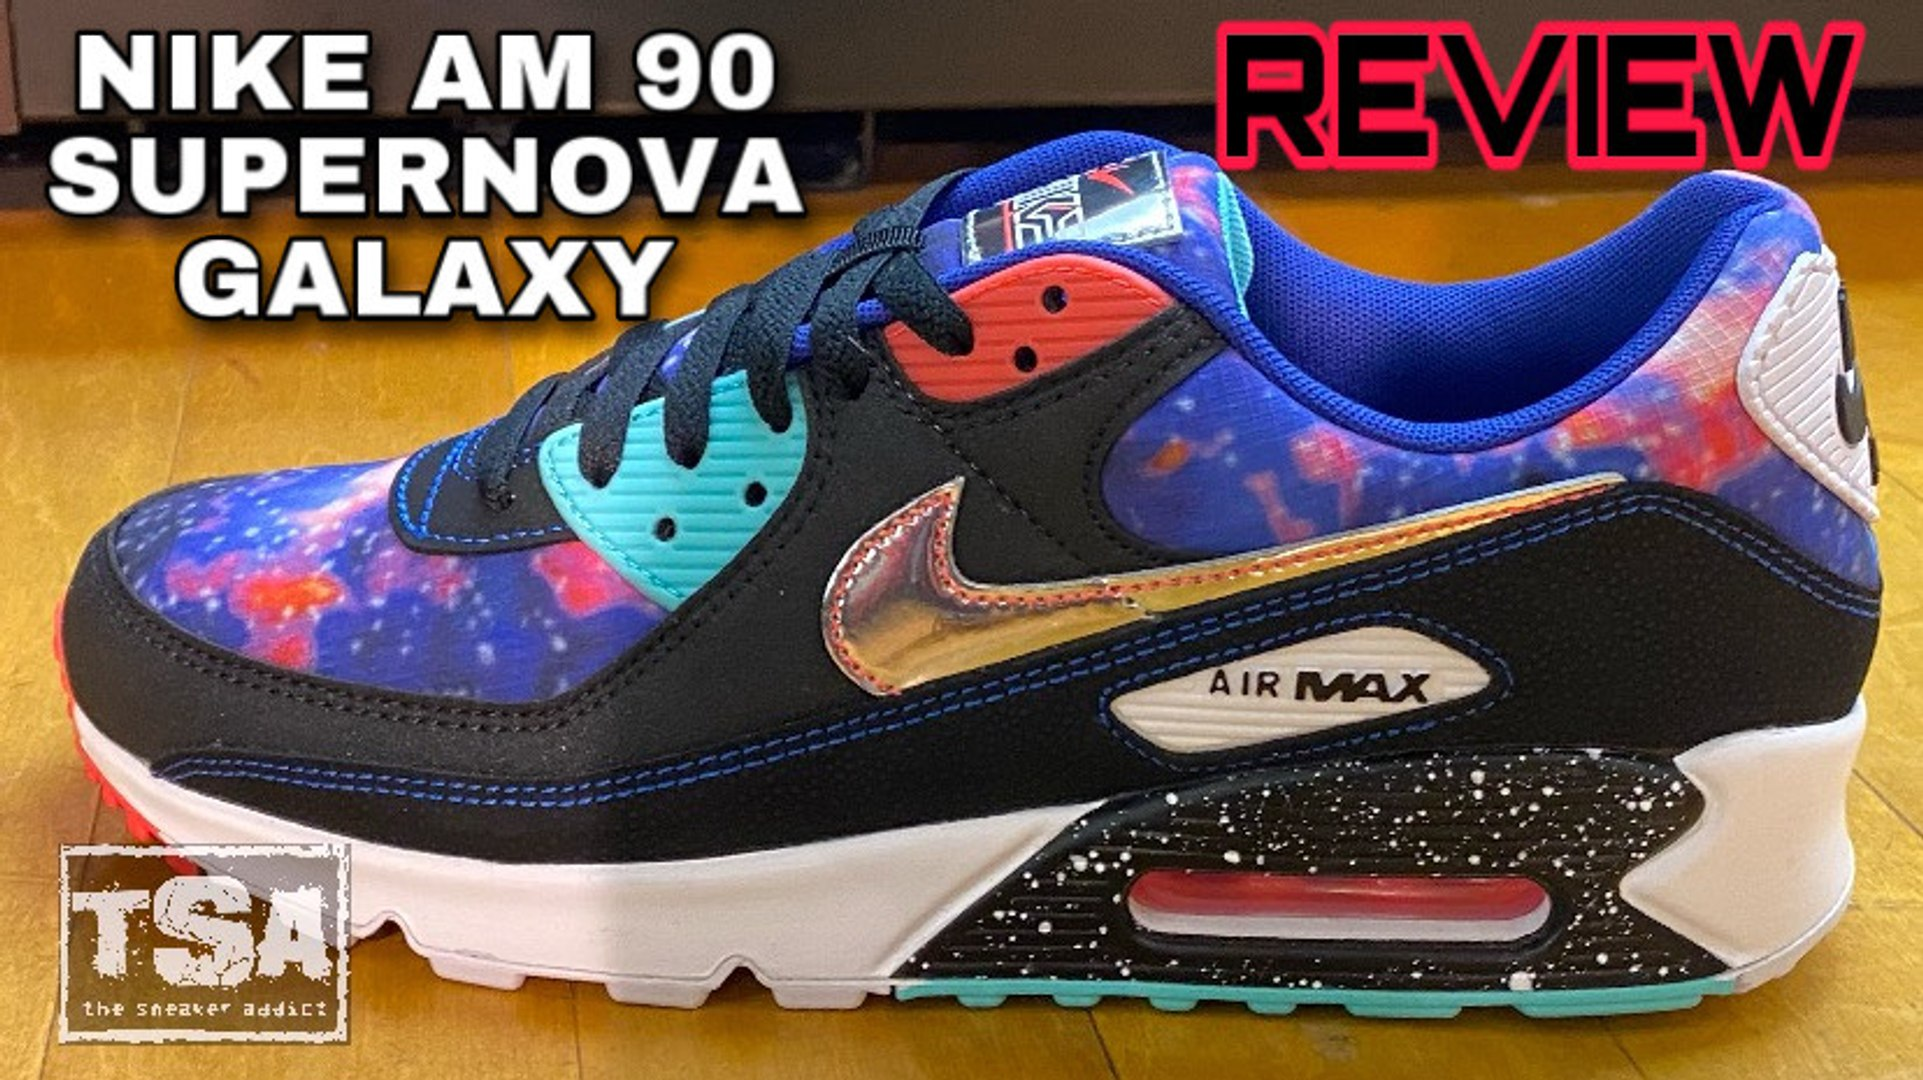 Nike Air Max 90 Supernova Galaxy Sneaker Review